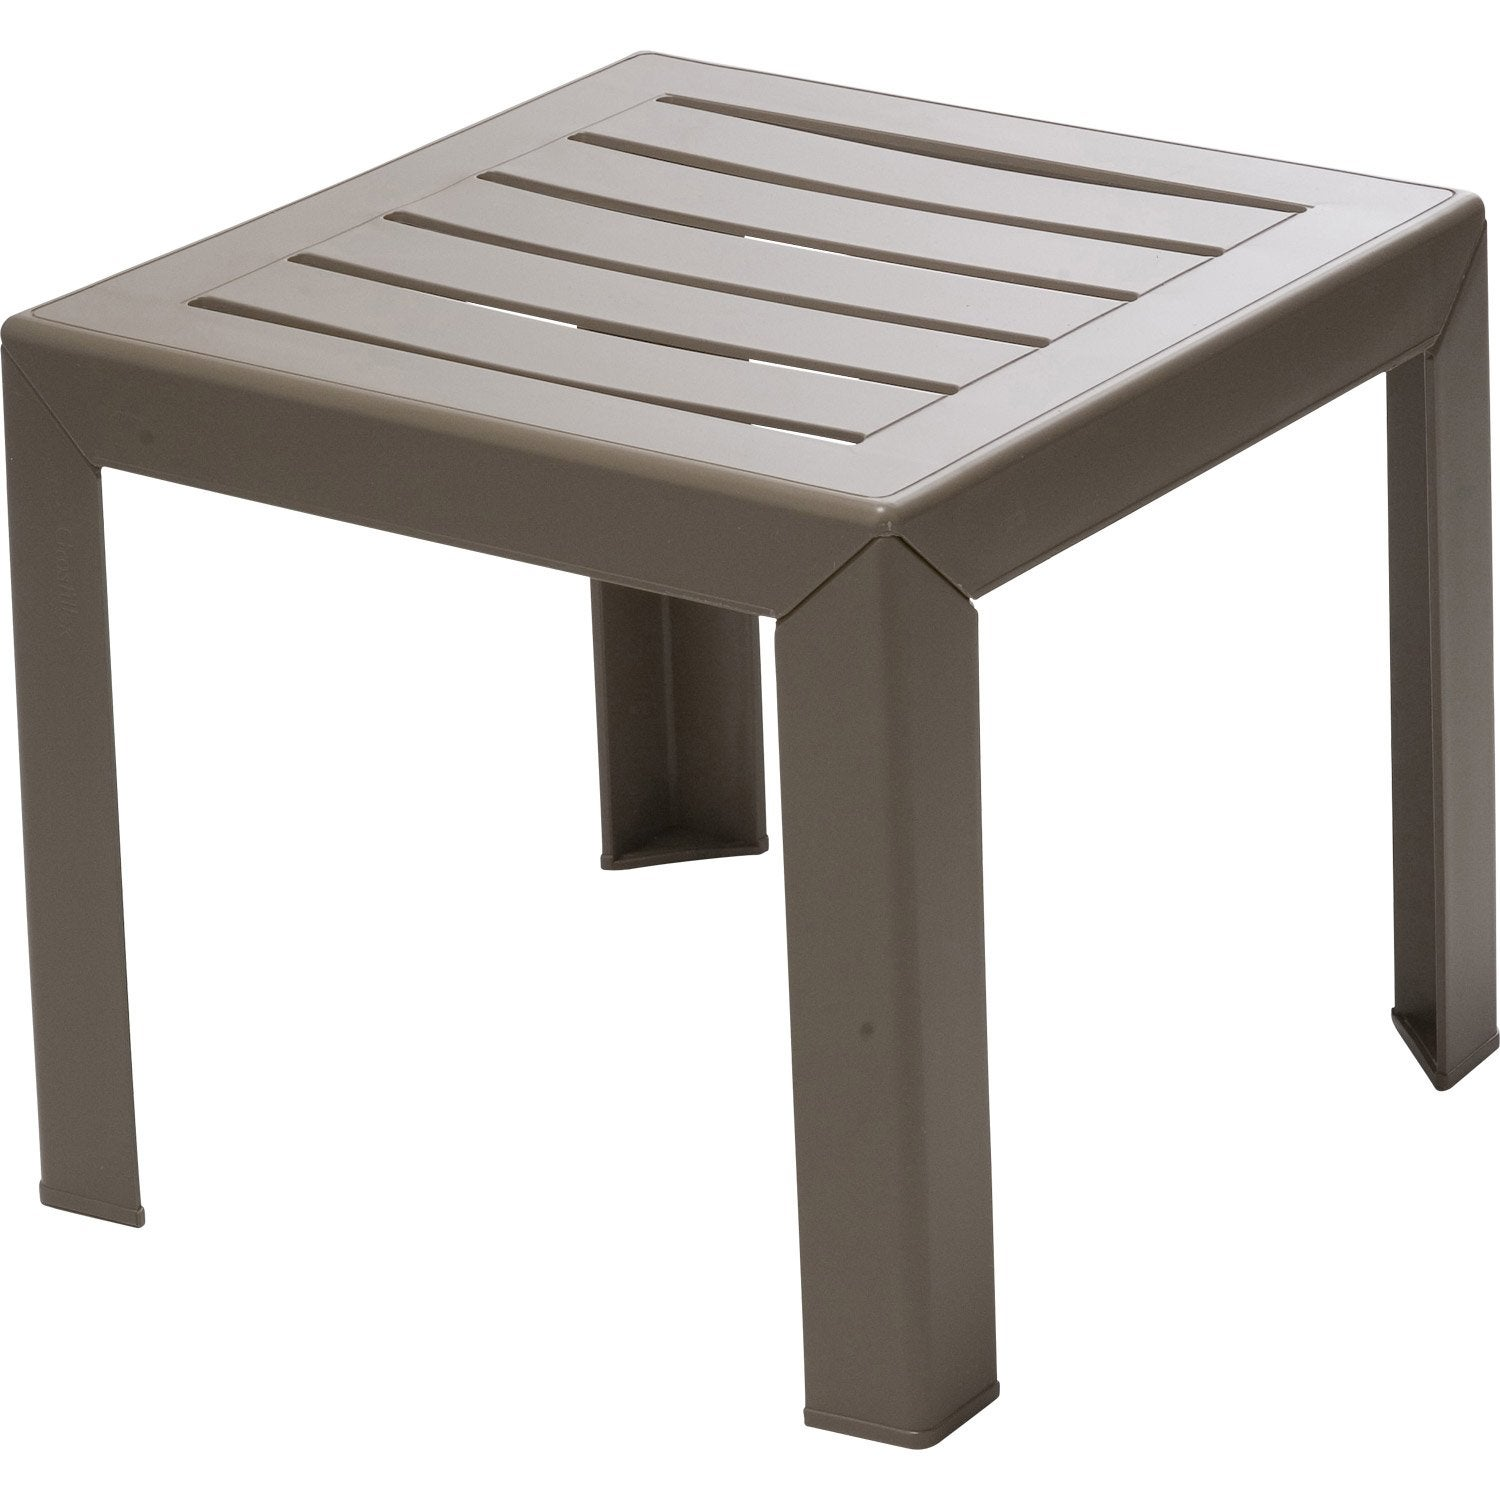 Table basse grosfillex miami carr e taupe leroy merlin for Table basse carree